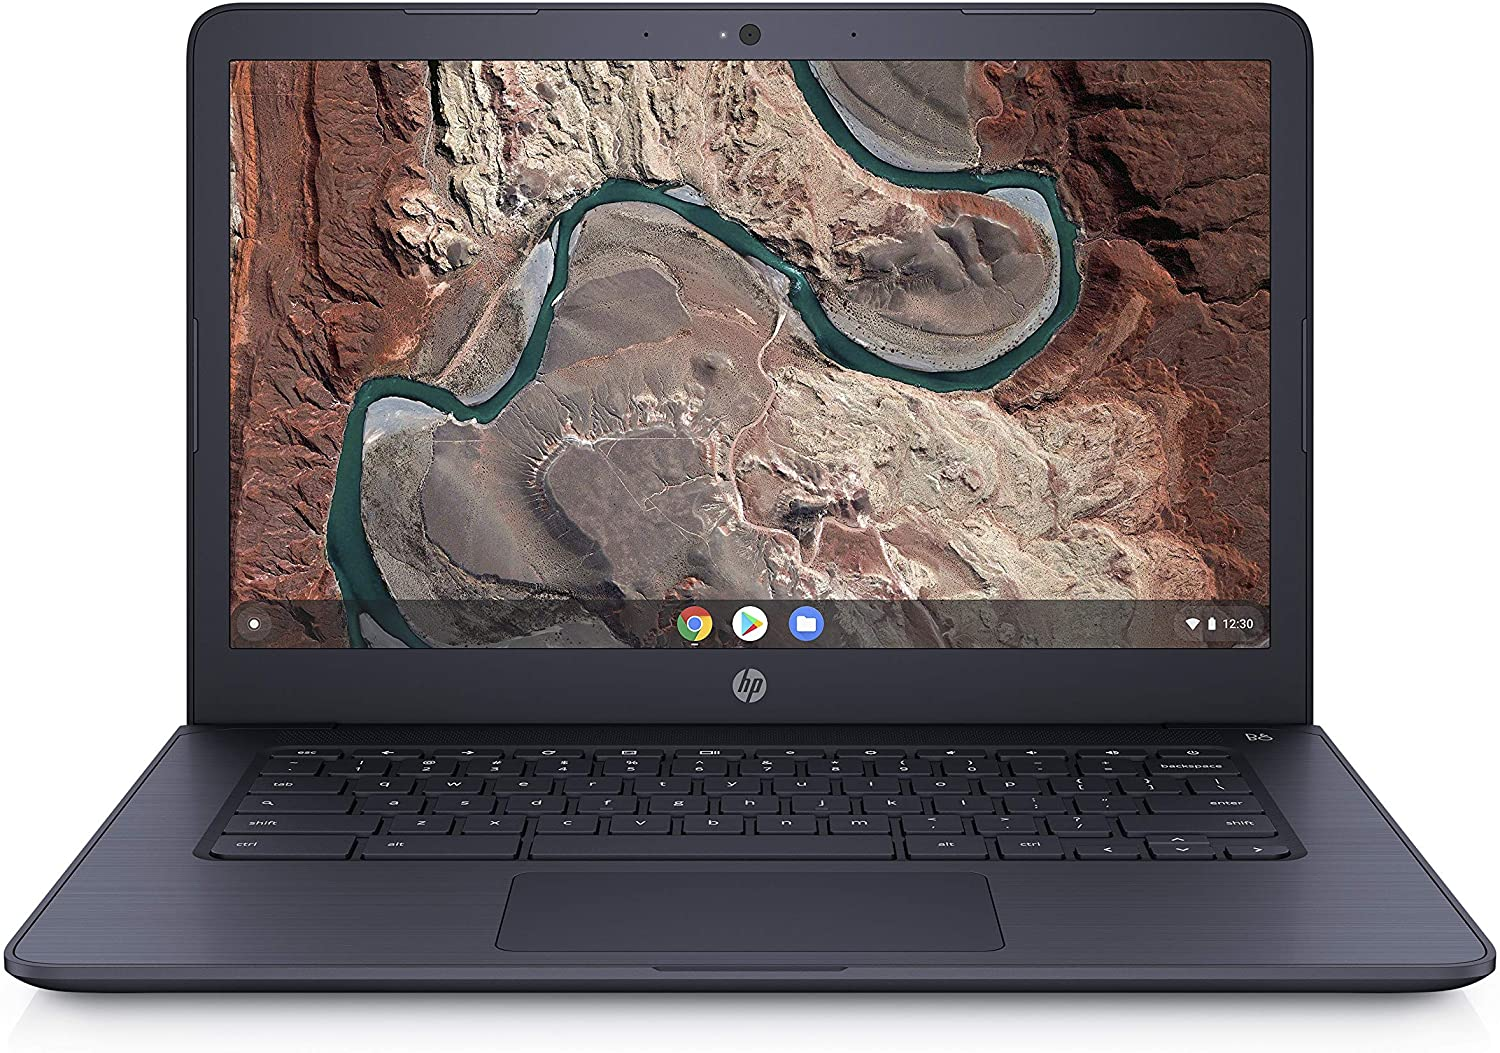 HP Chromebook 14-inch Laptop with 180-Degree Hinge, Full HD Screen, AMD Dual-Core A4-9120 Processor, 4 GB SDRAM, 32 GB eMMC Storage, Chrome OS (14-db0080nr, Ink Blue)